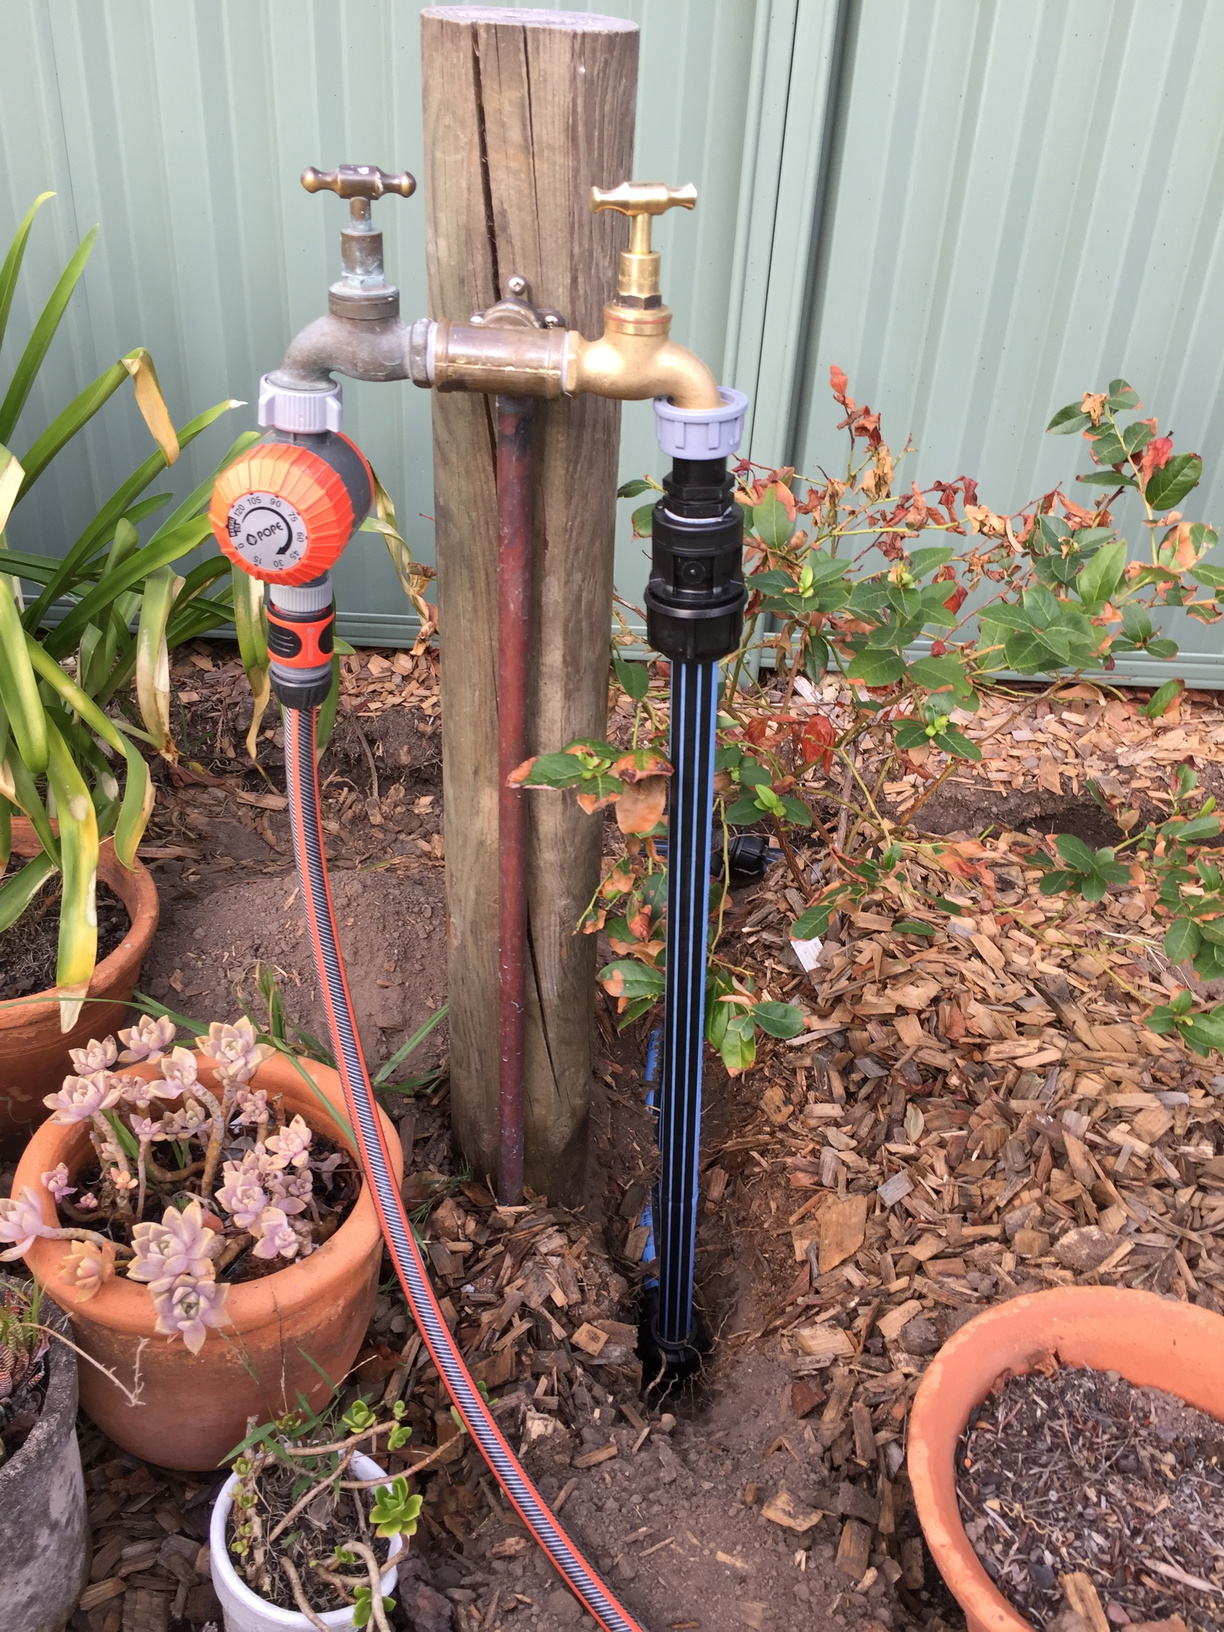 Second garden tap installed, connected to 25mm blue-line poly-pipe.